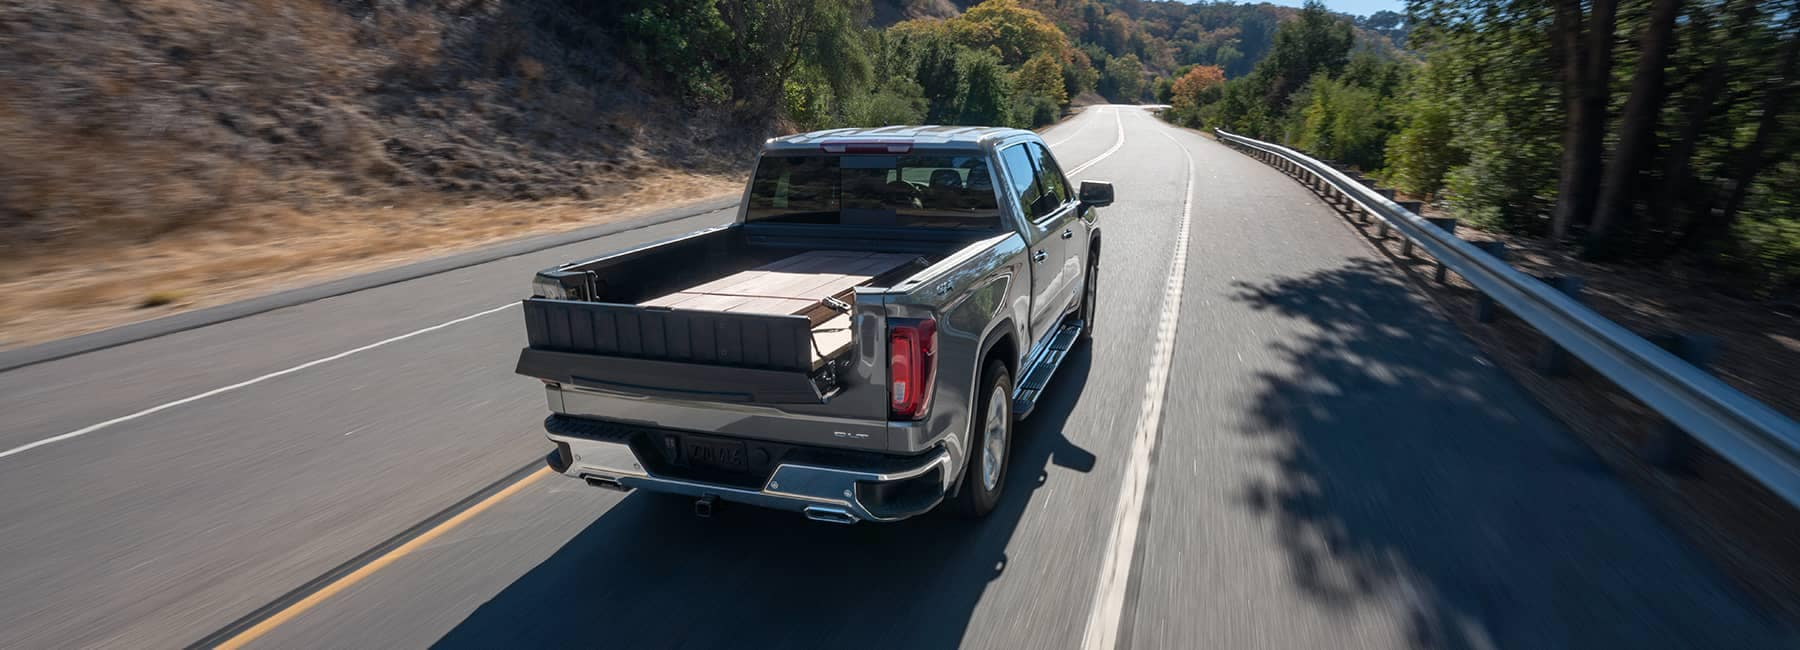 2020 GMC Sierra 1500 on the Road